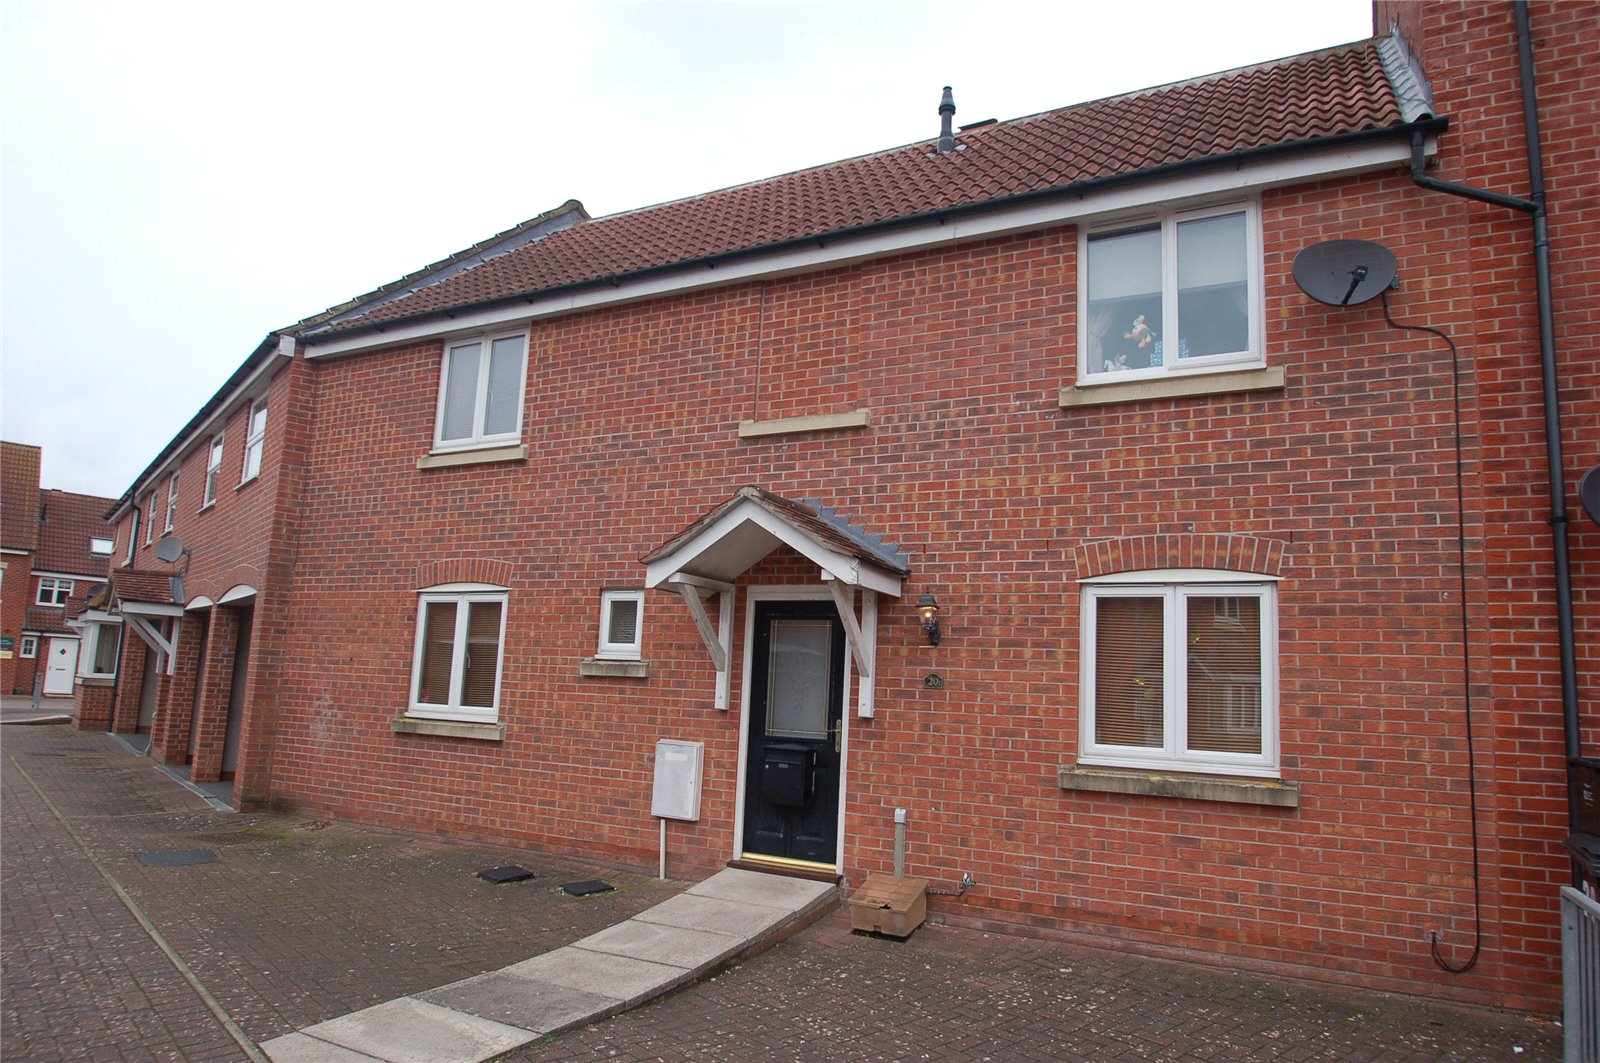 3 Bedrooms Property for sale in Viscount Square Bridgwater Somerset TA6